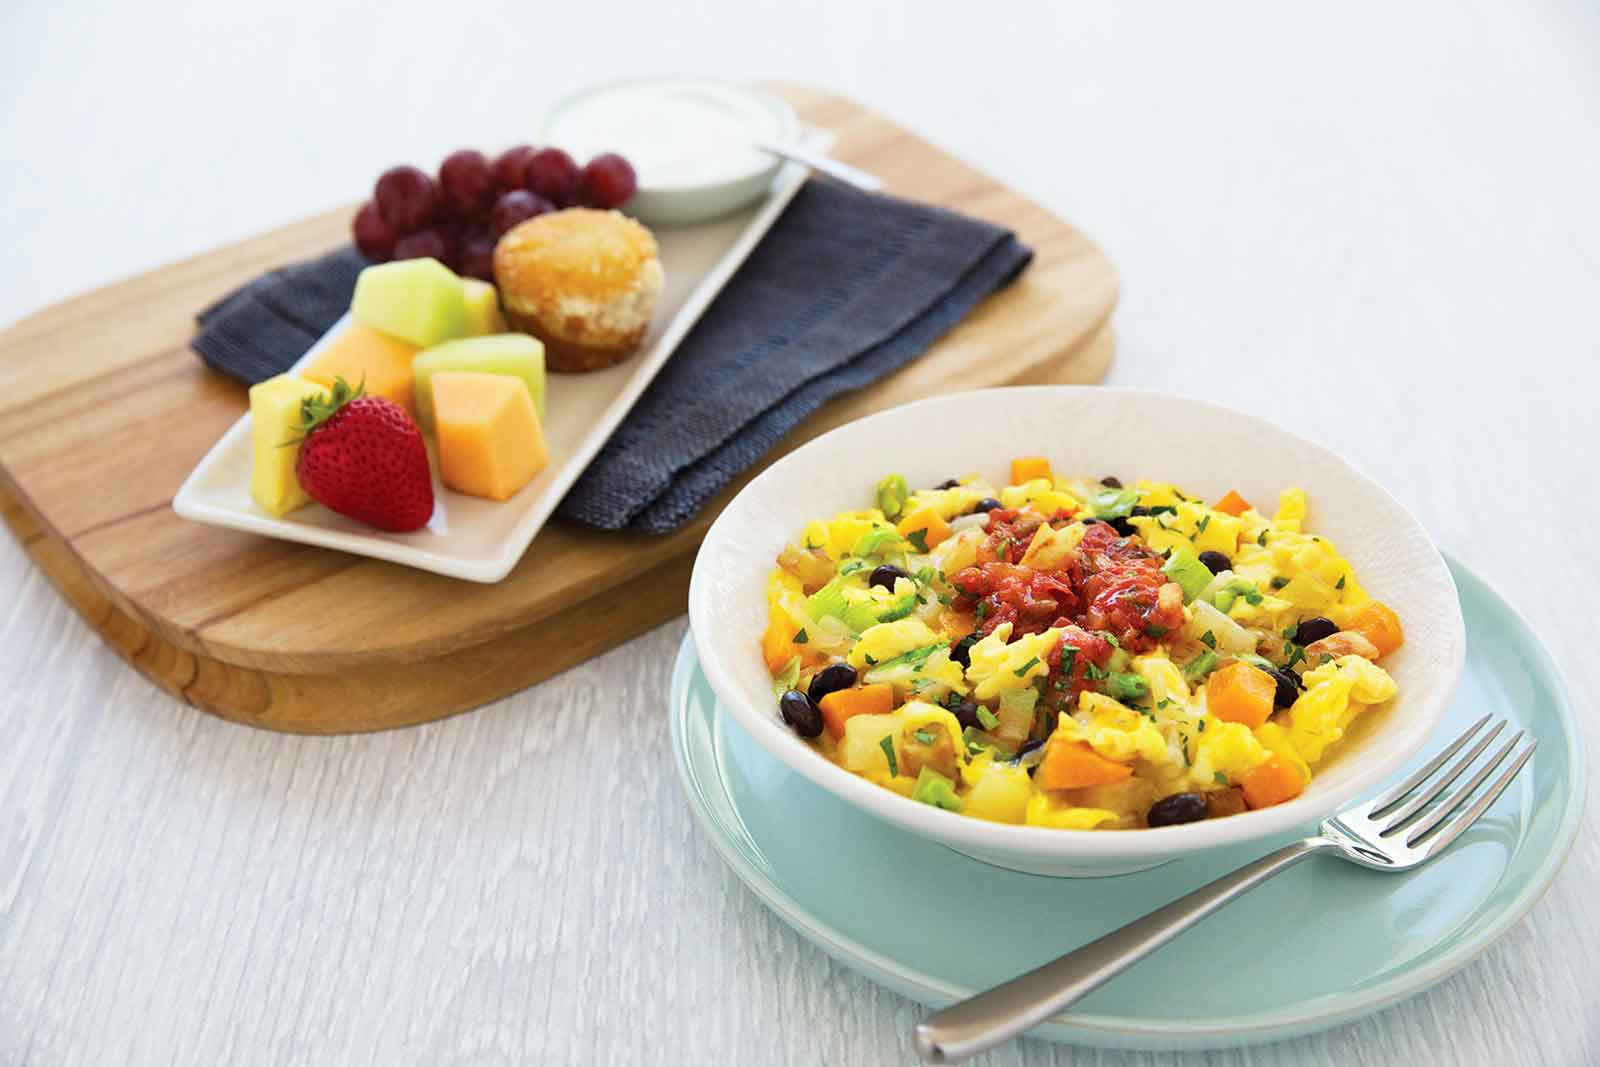 United Airlines Economy breakfast southwestern bistro scramble with black beans and butternut squash